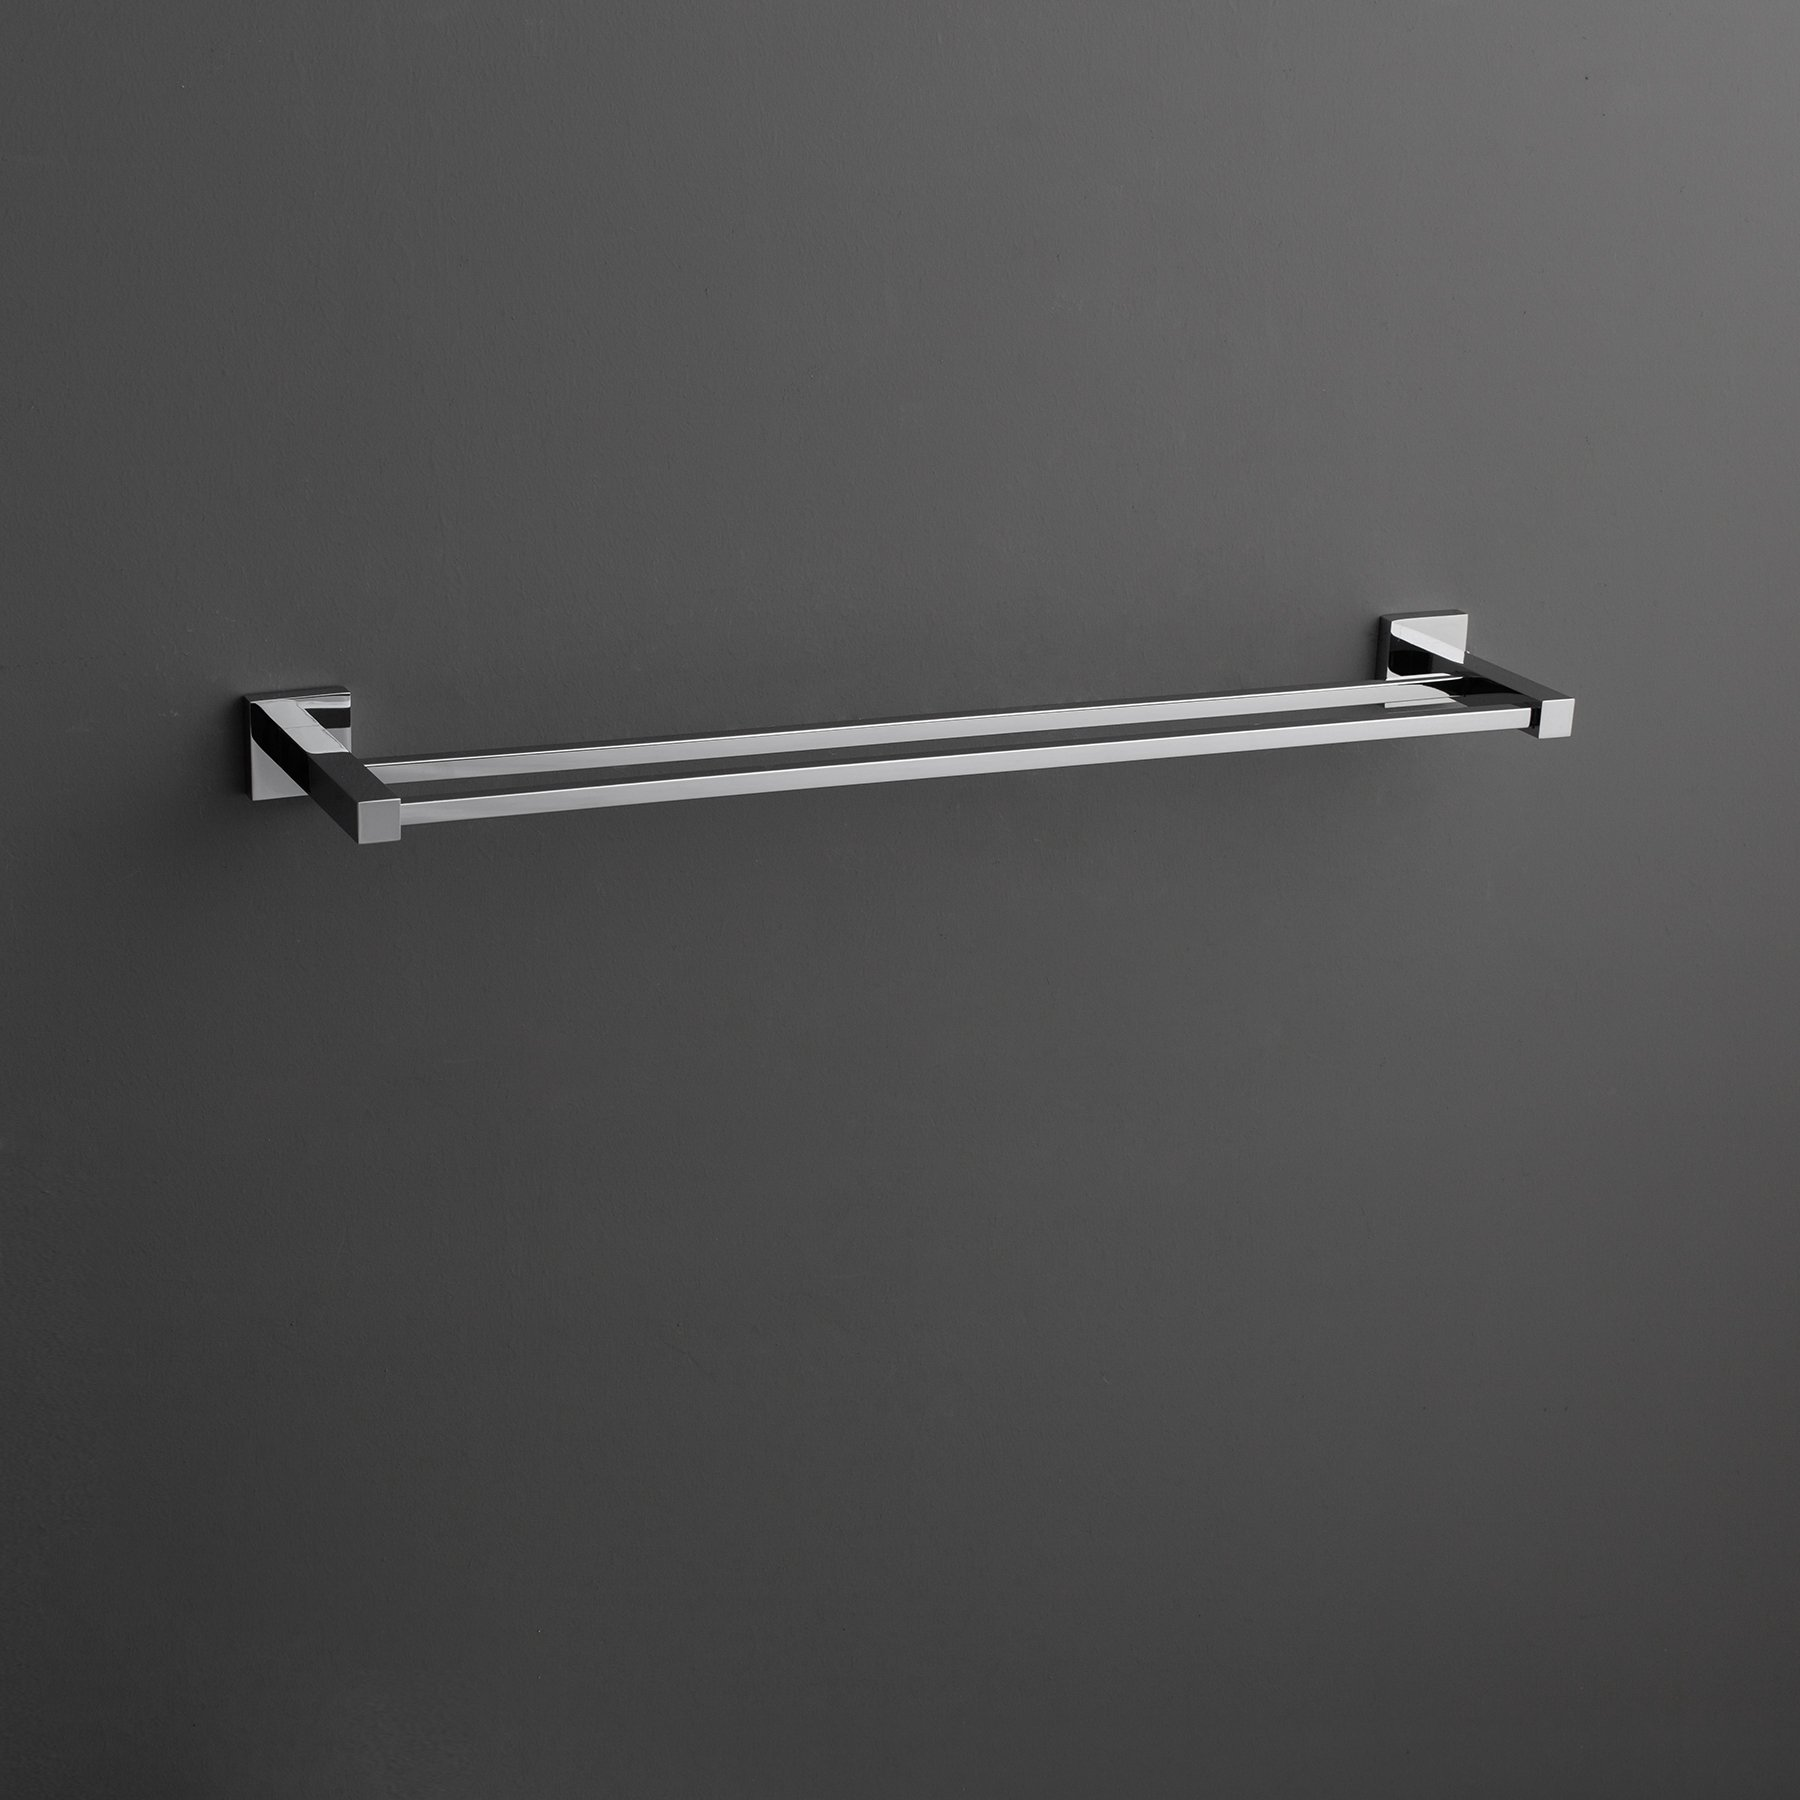 MAYKKE Zane 25'' Stainless Steel Double Towel Bar | Modern Wall Mounted Towel Holder for Bathroom, Kitchen, Shower | Polished Chrome, XYA1000901 by Maykke (Image #2)